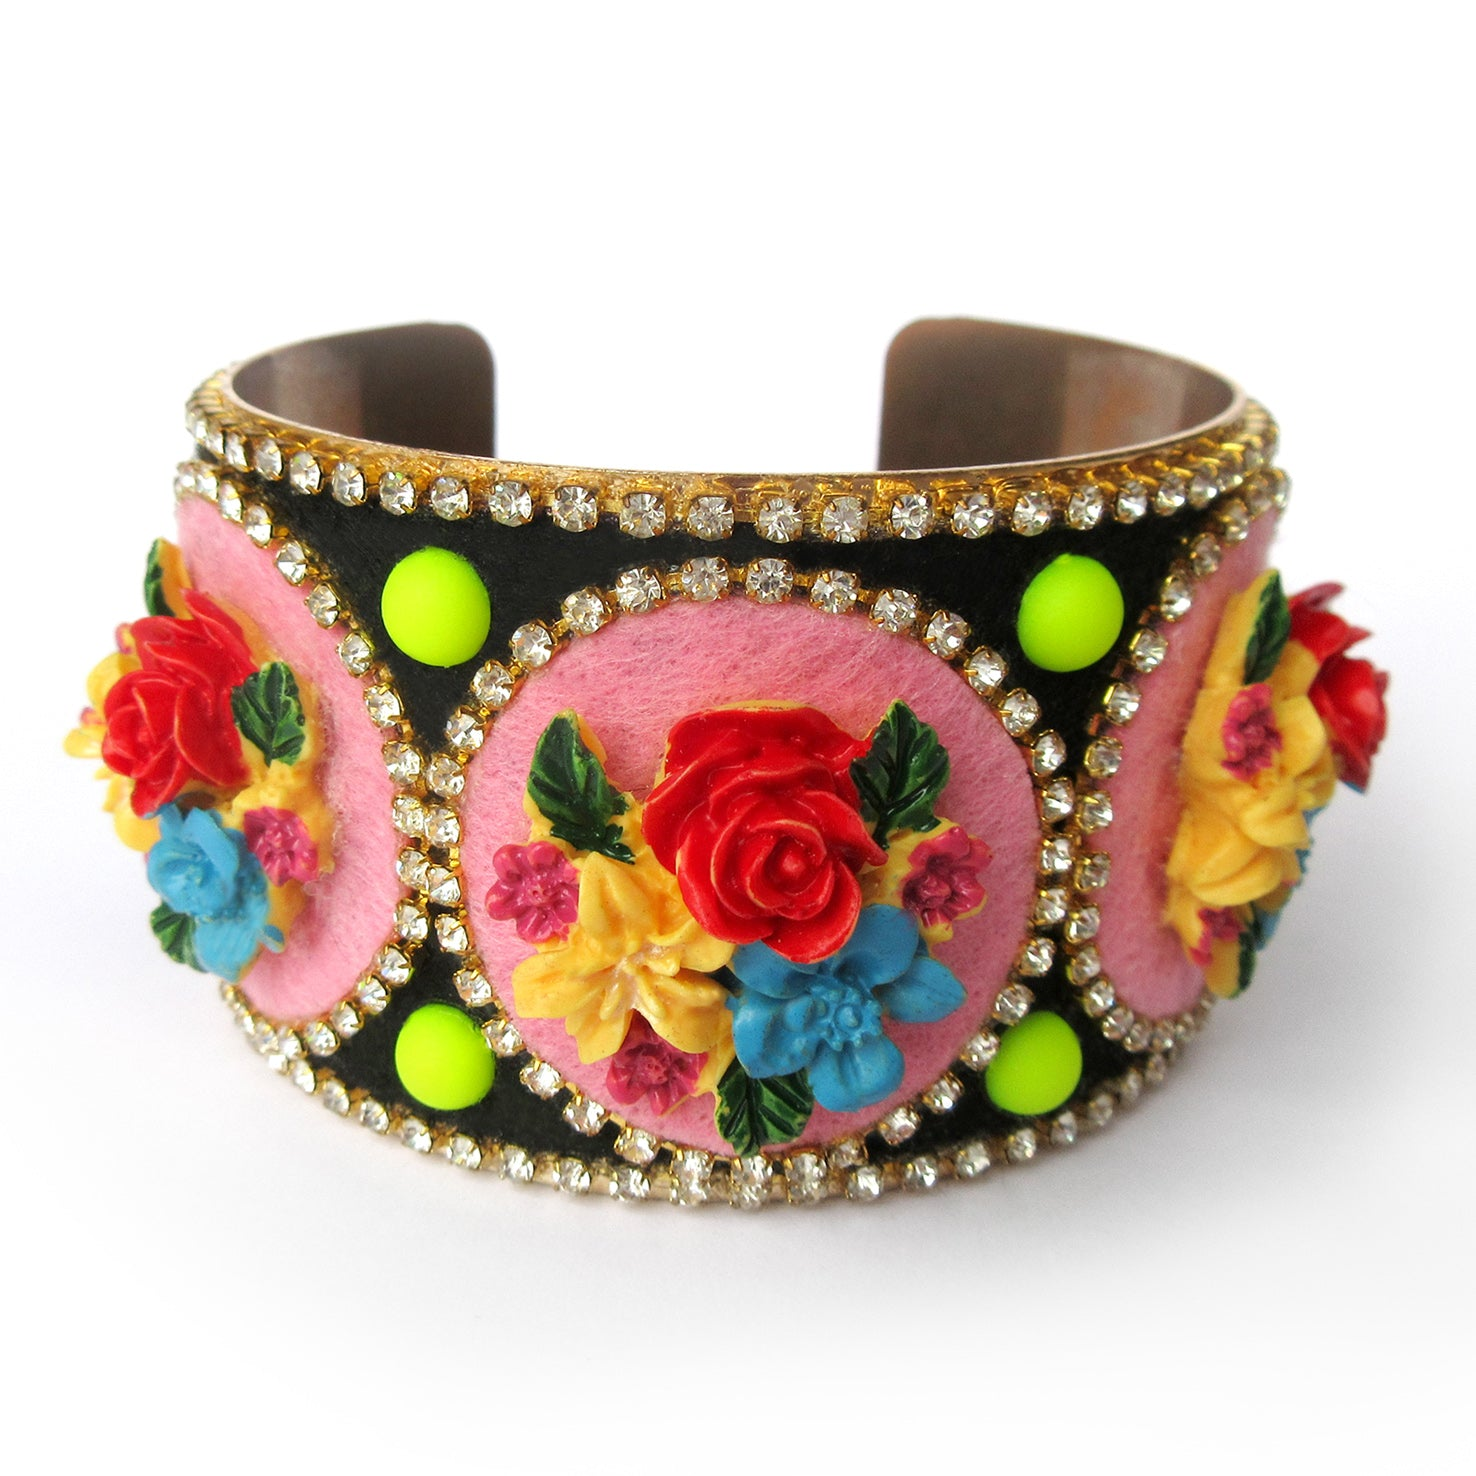 Mouchkine Jewelry chic and elegant Bracelet . Entirely handmade and made in France, a haute couture jewel decorated with flowers to sublimate your style. un bracelet chic et couture, orné de fleurs et de strass pour un look mode et tendance.